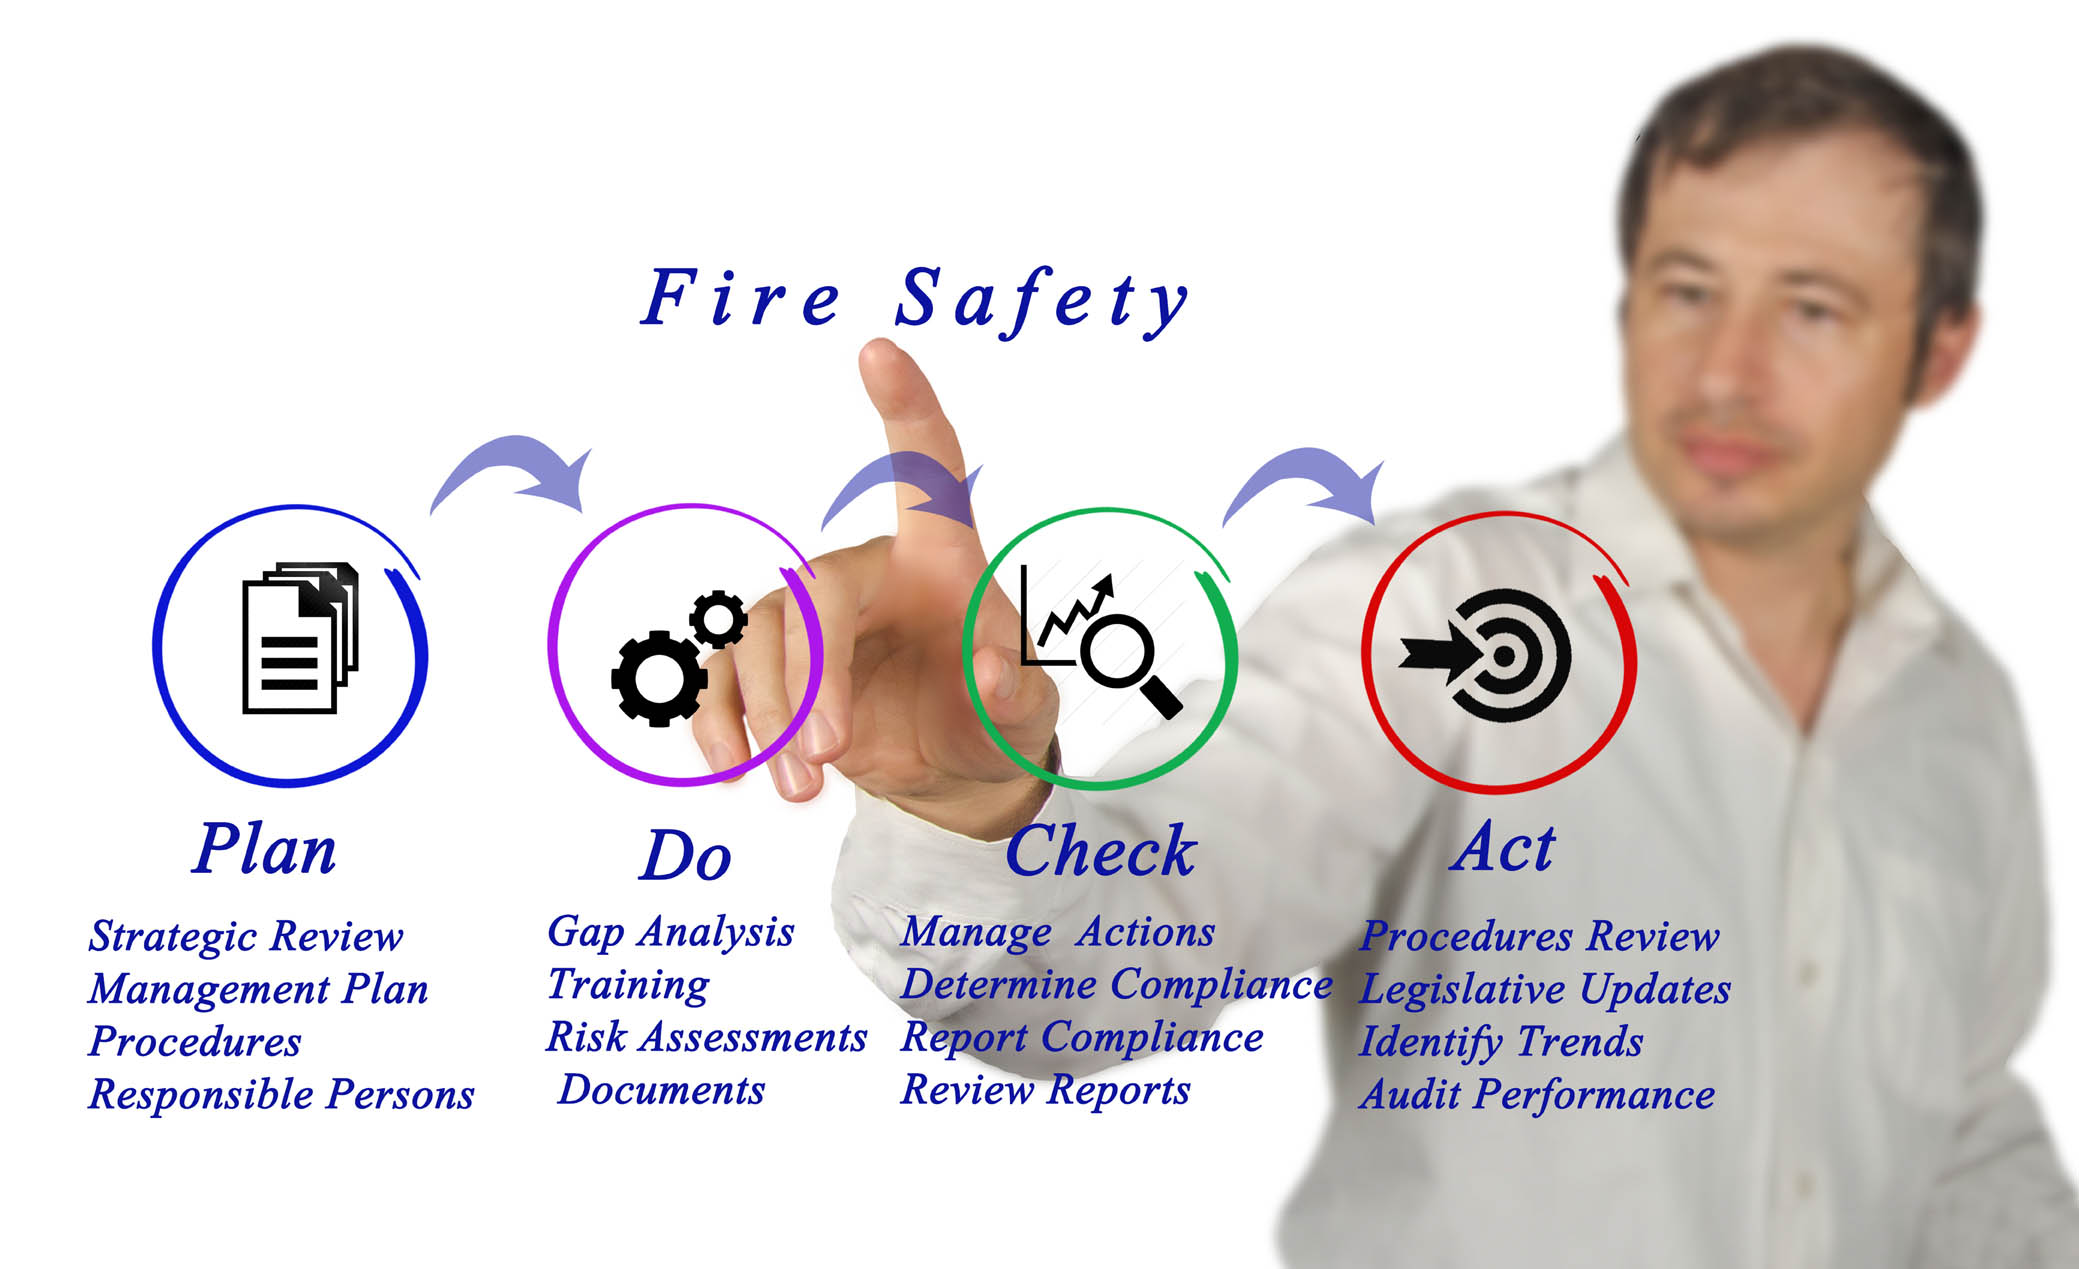 Fire safety assessments